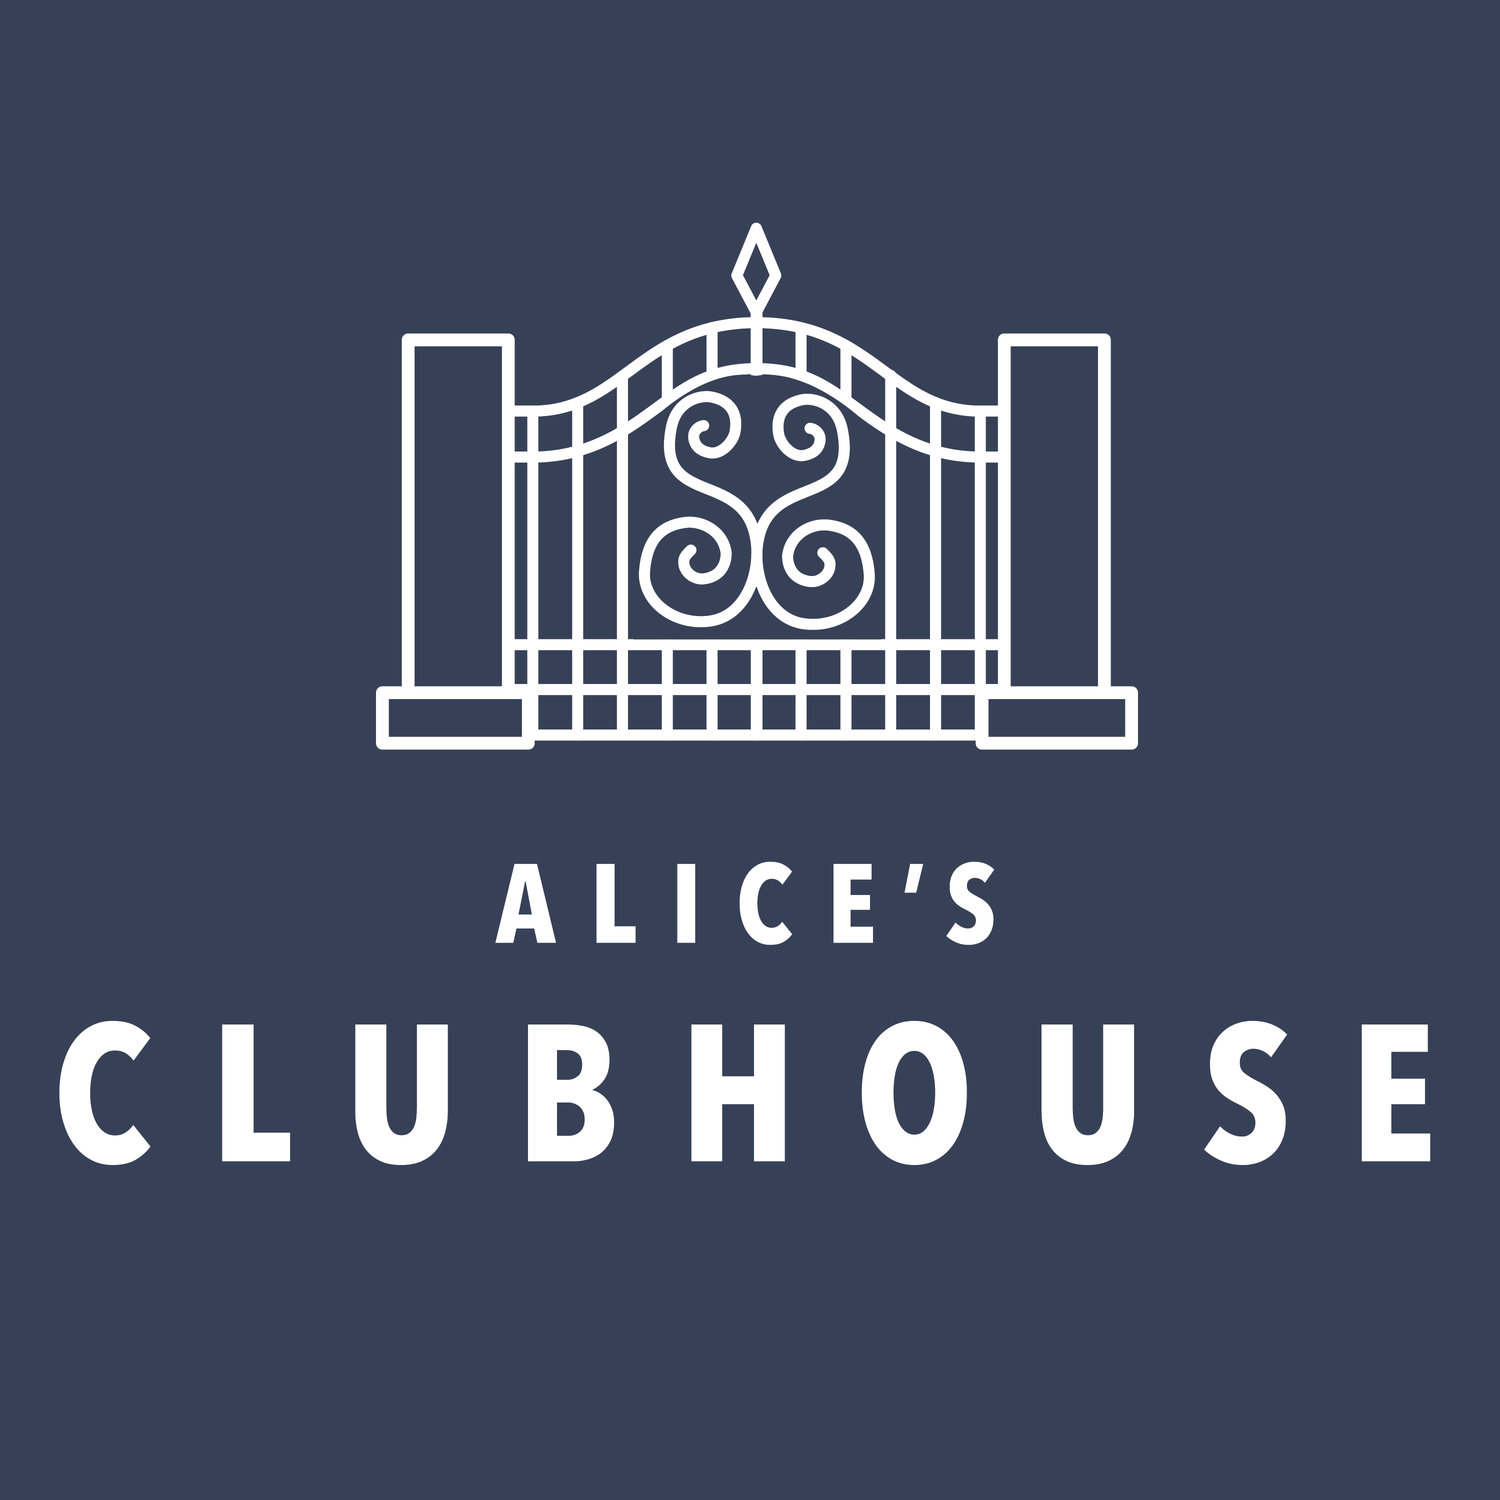 Alice's Clubhouse